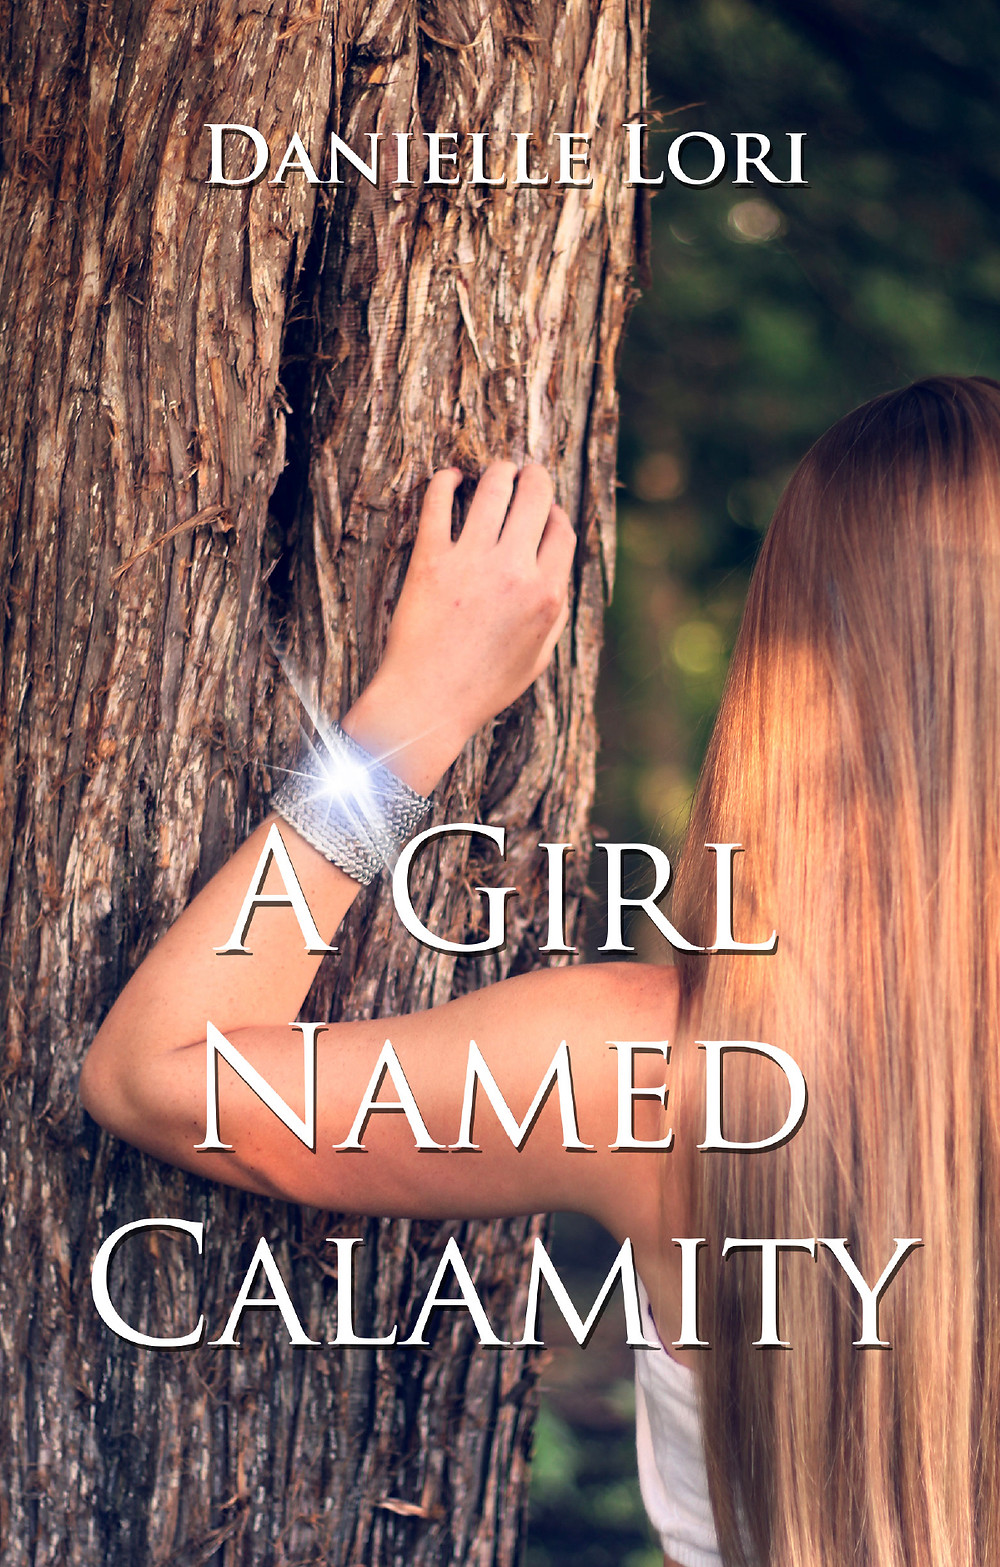 A Girl Named Calamity, Danielle Lori, Author Interview, affordable book editor, ebook editor, affordable book editing services, freelance editor, ebook promotion